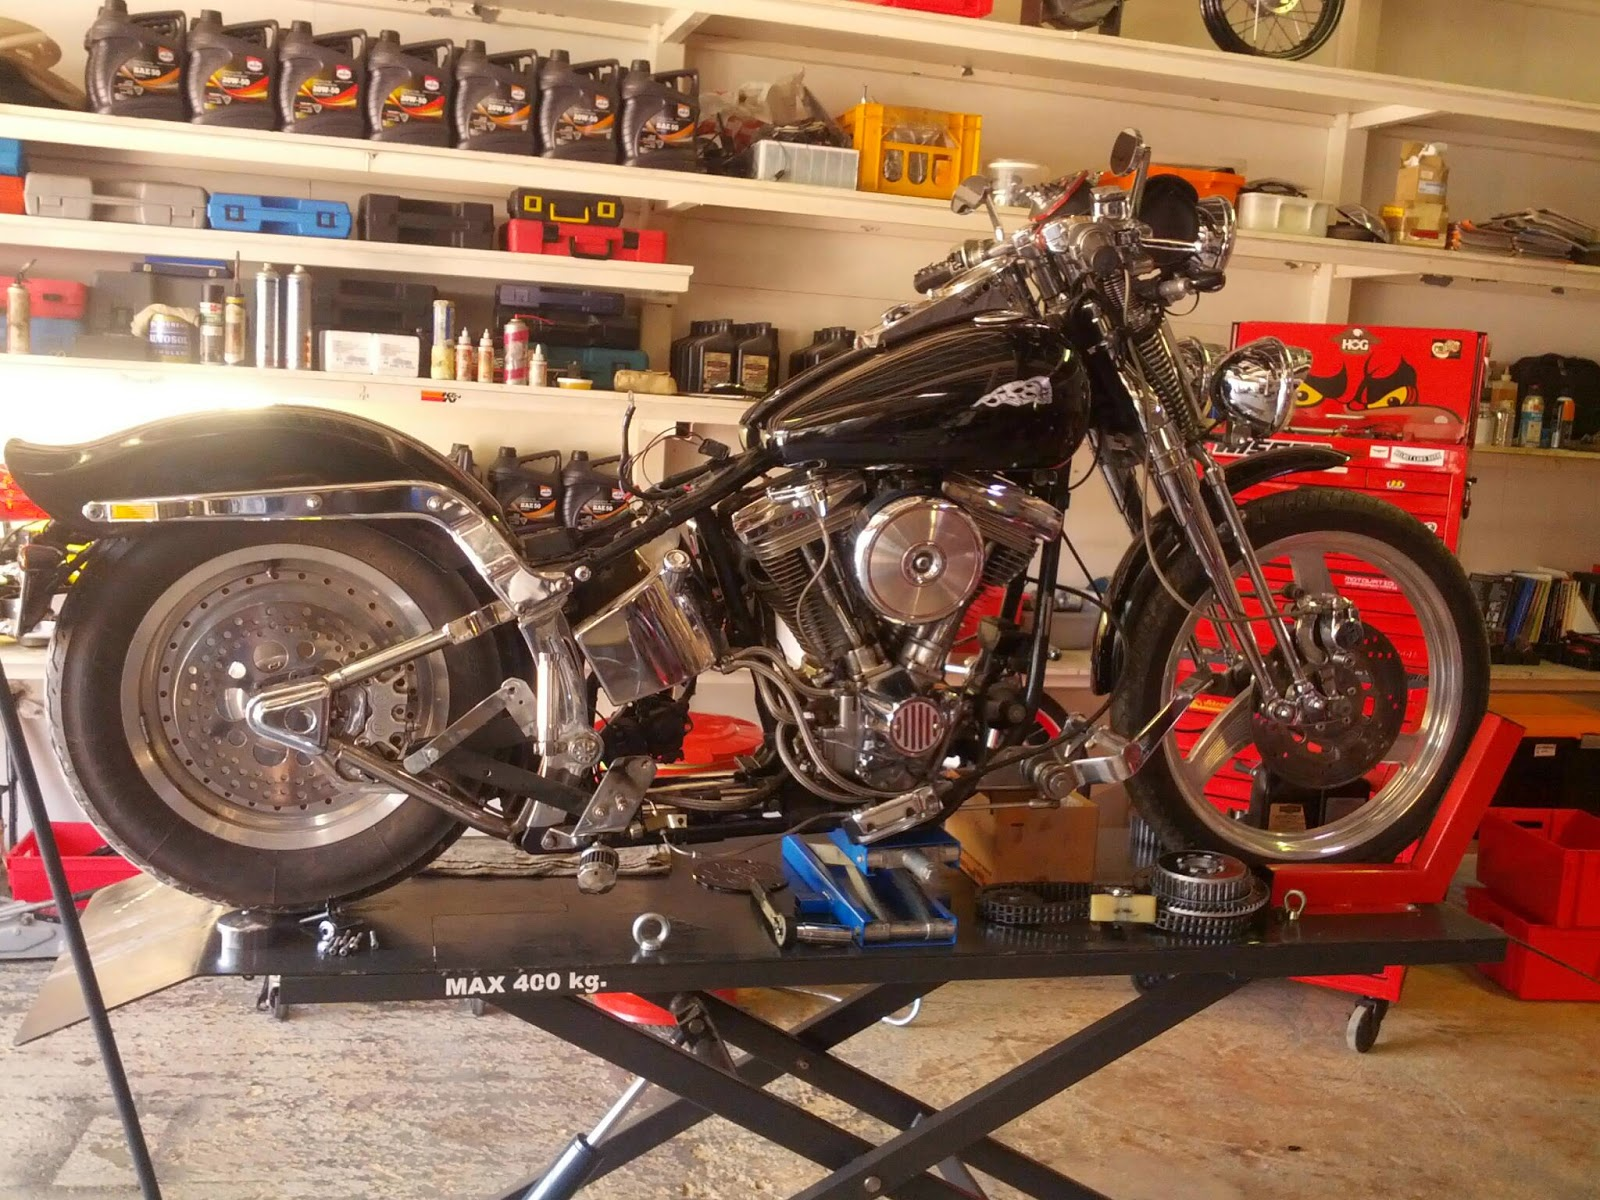 Working Class Motorcycles Big Gear Box Renovation For Evo 1991 Of Motorcycle Broken Trapdoor The Wall Inside Lainshaft Splinted New Coming Soon